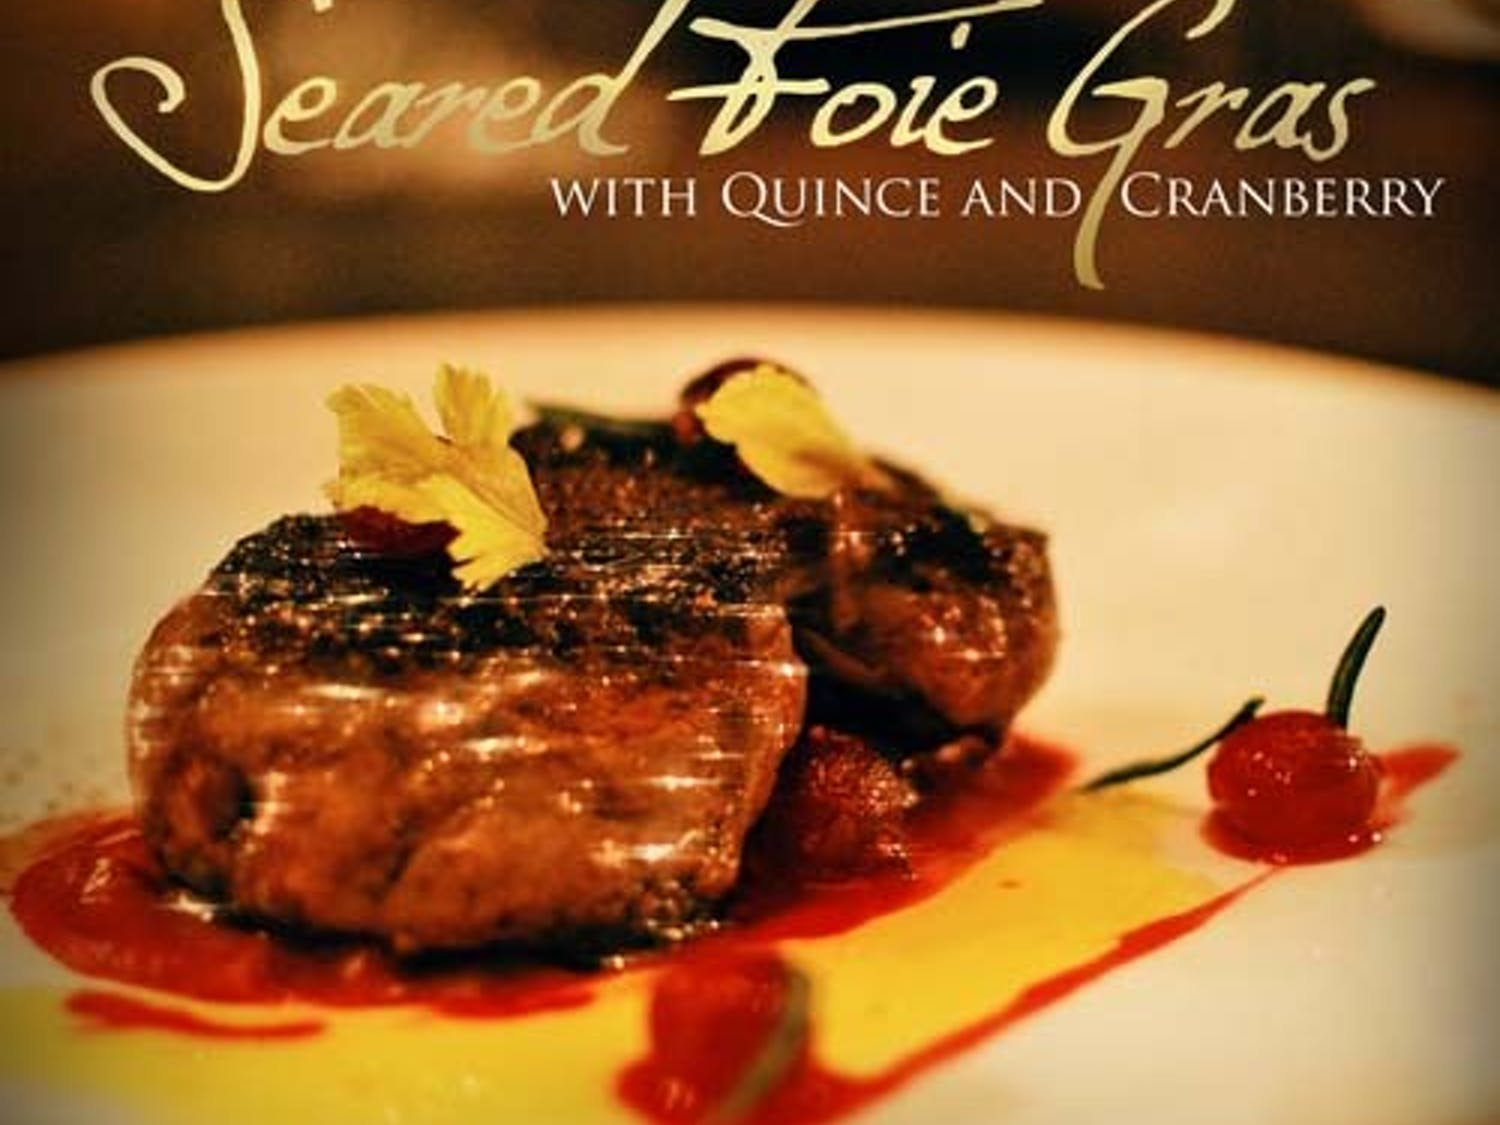 Seared Foie-Gras with Quince and Cranberry